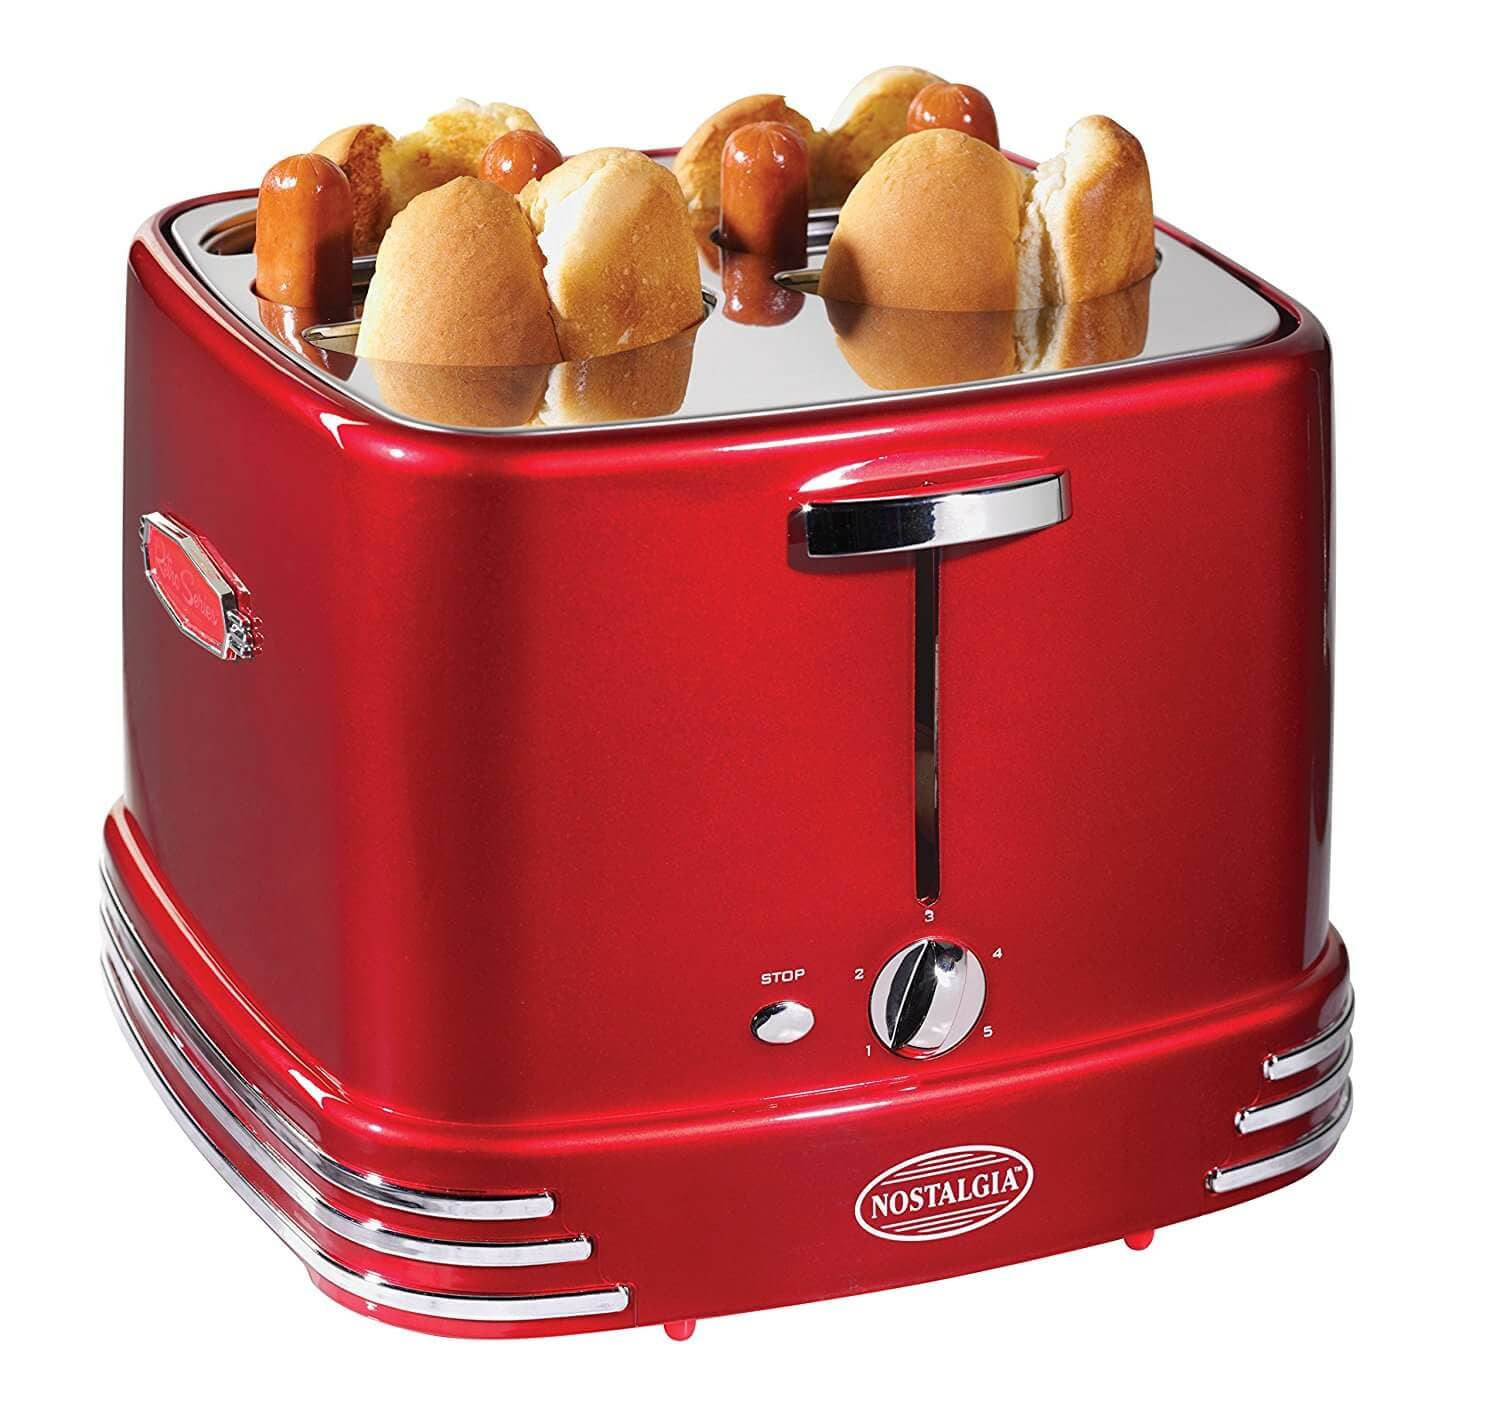 Nostalgia Retro Red Pop Up Hot Dog Toaster